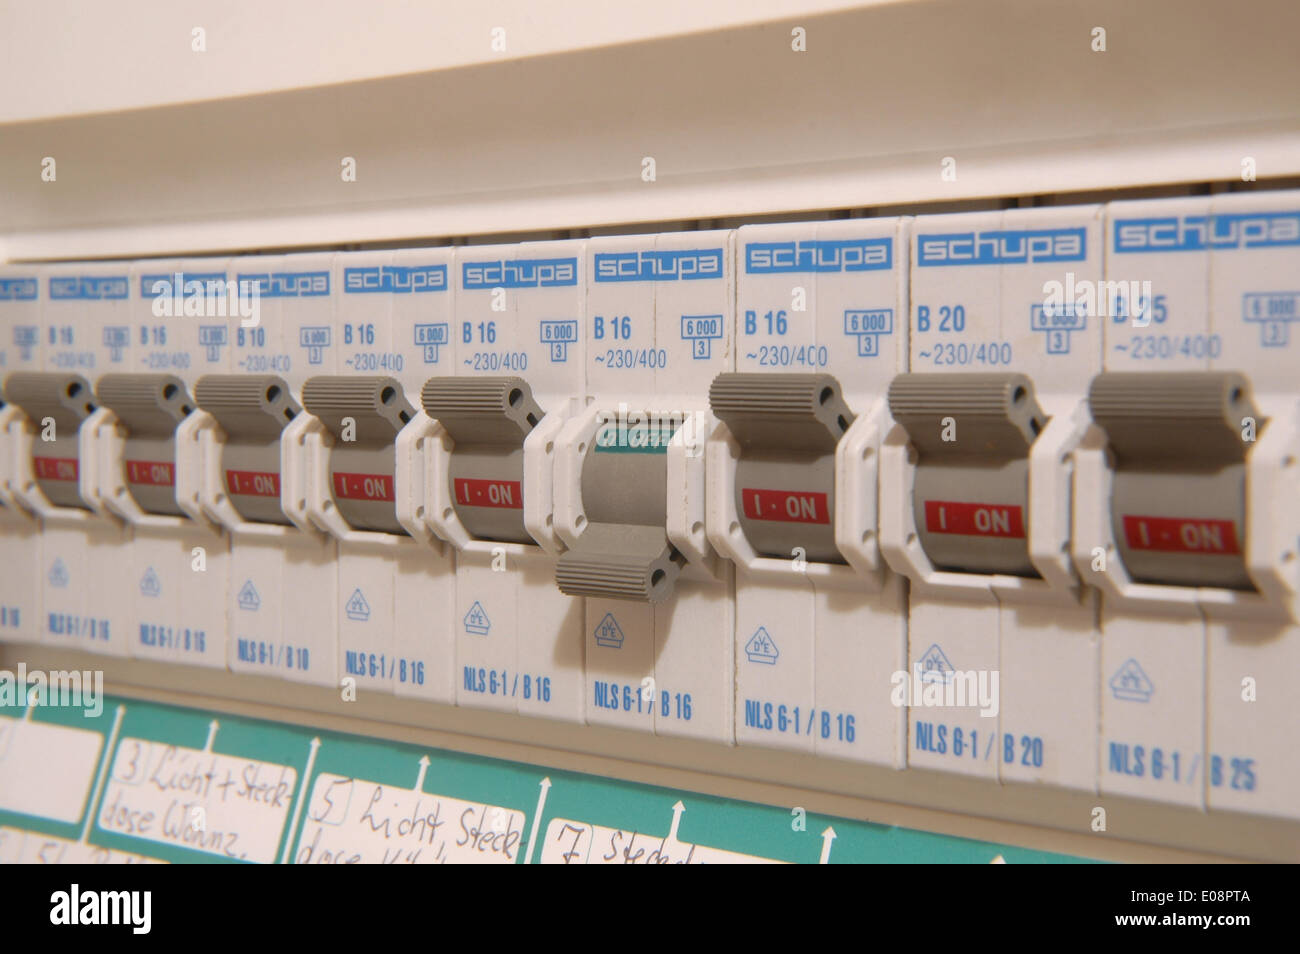 Fuse Box Household Stock Photos Images A Illustration Has Blown In Germany 07 June 2009